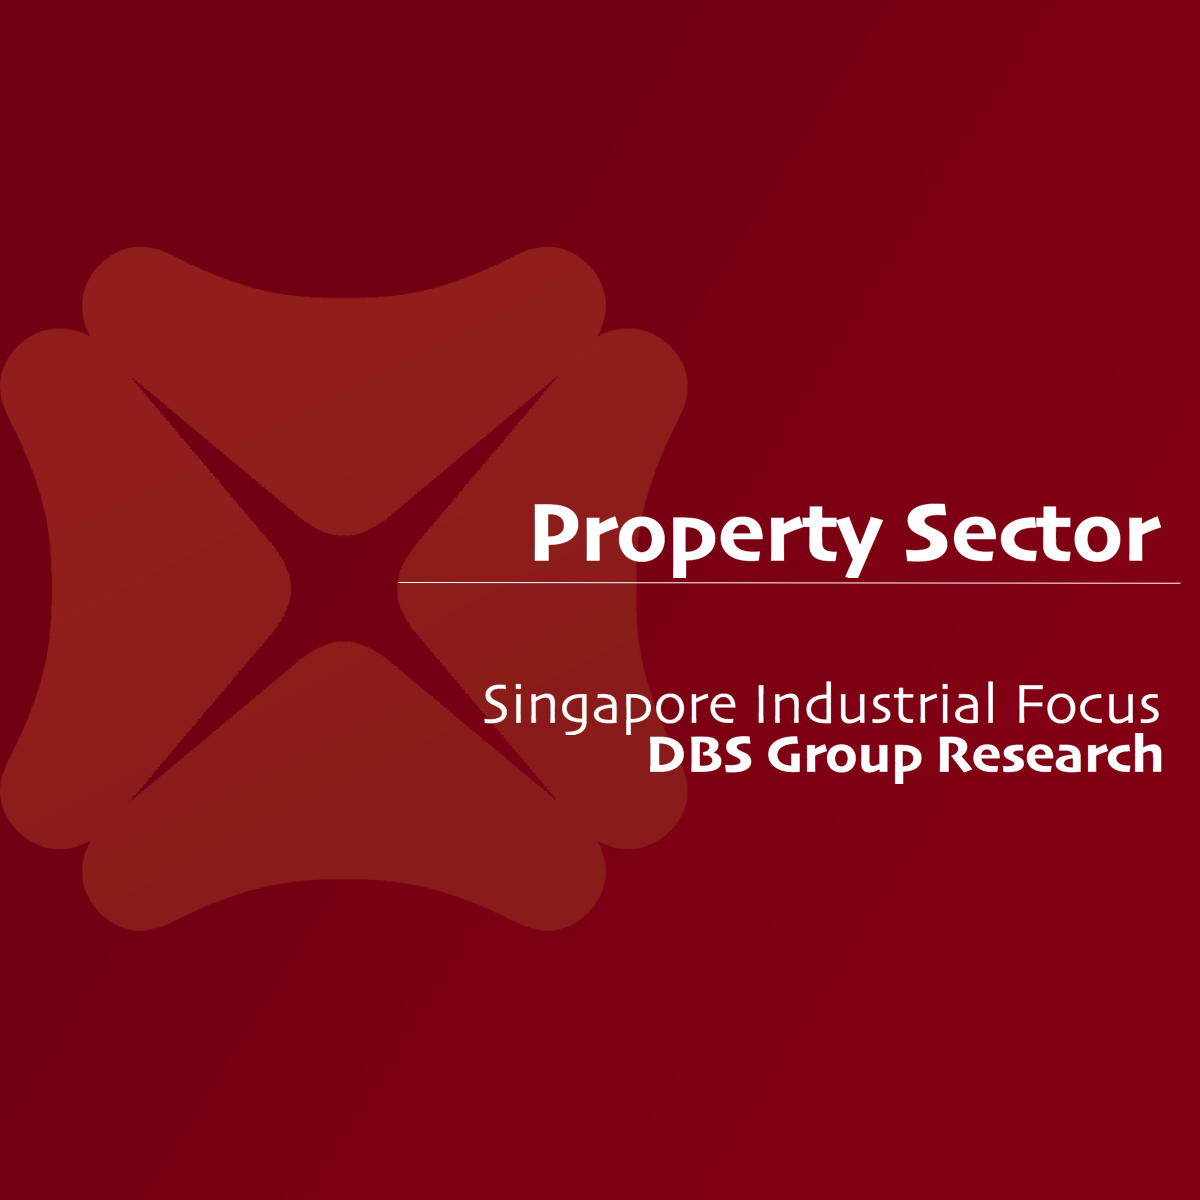 Property Sector - DBS Vickers 2018-01-15: Firming Fundamentals